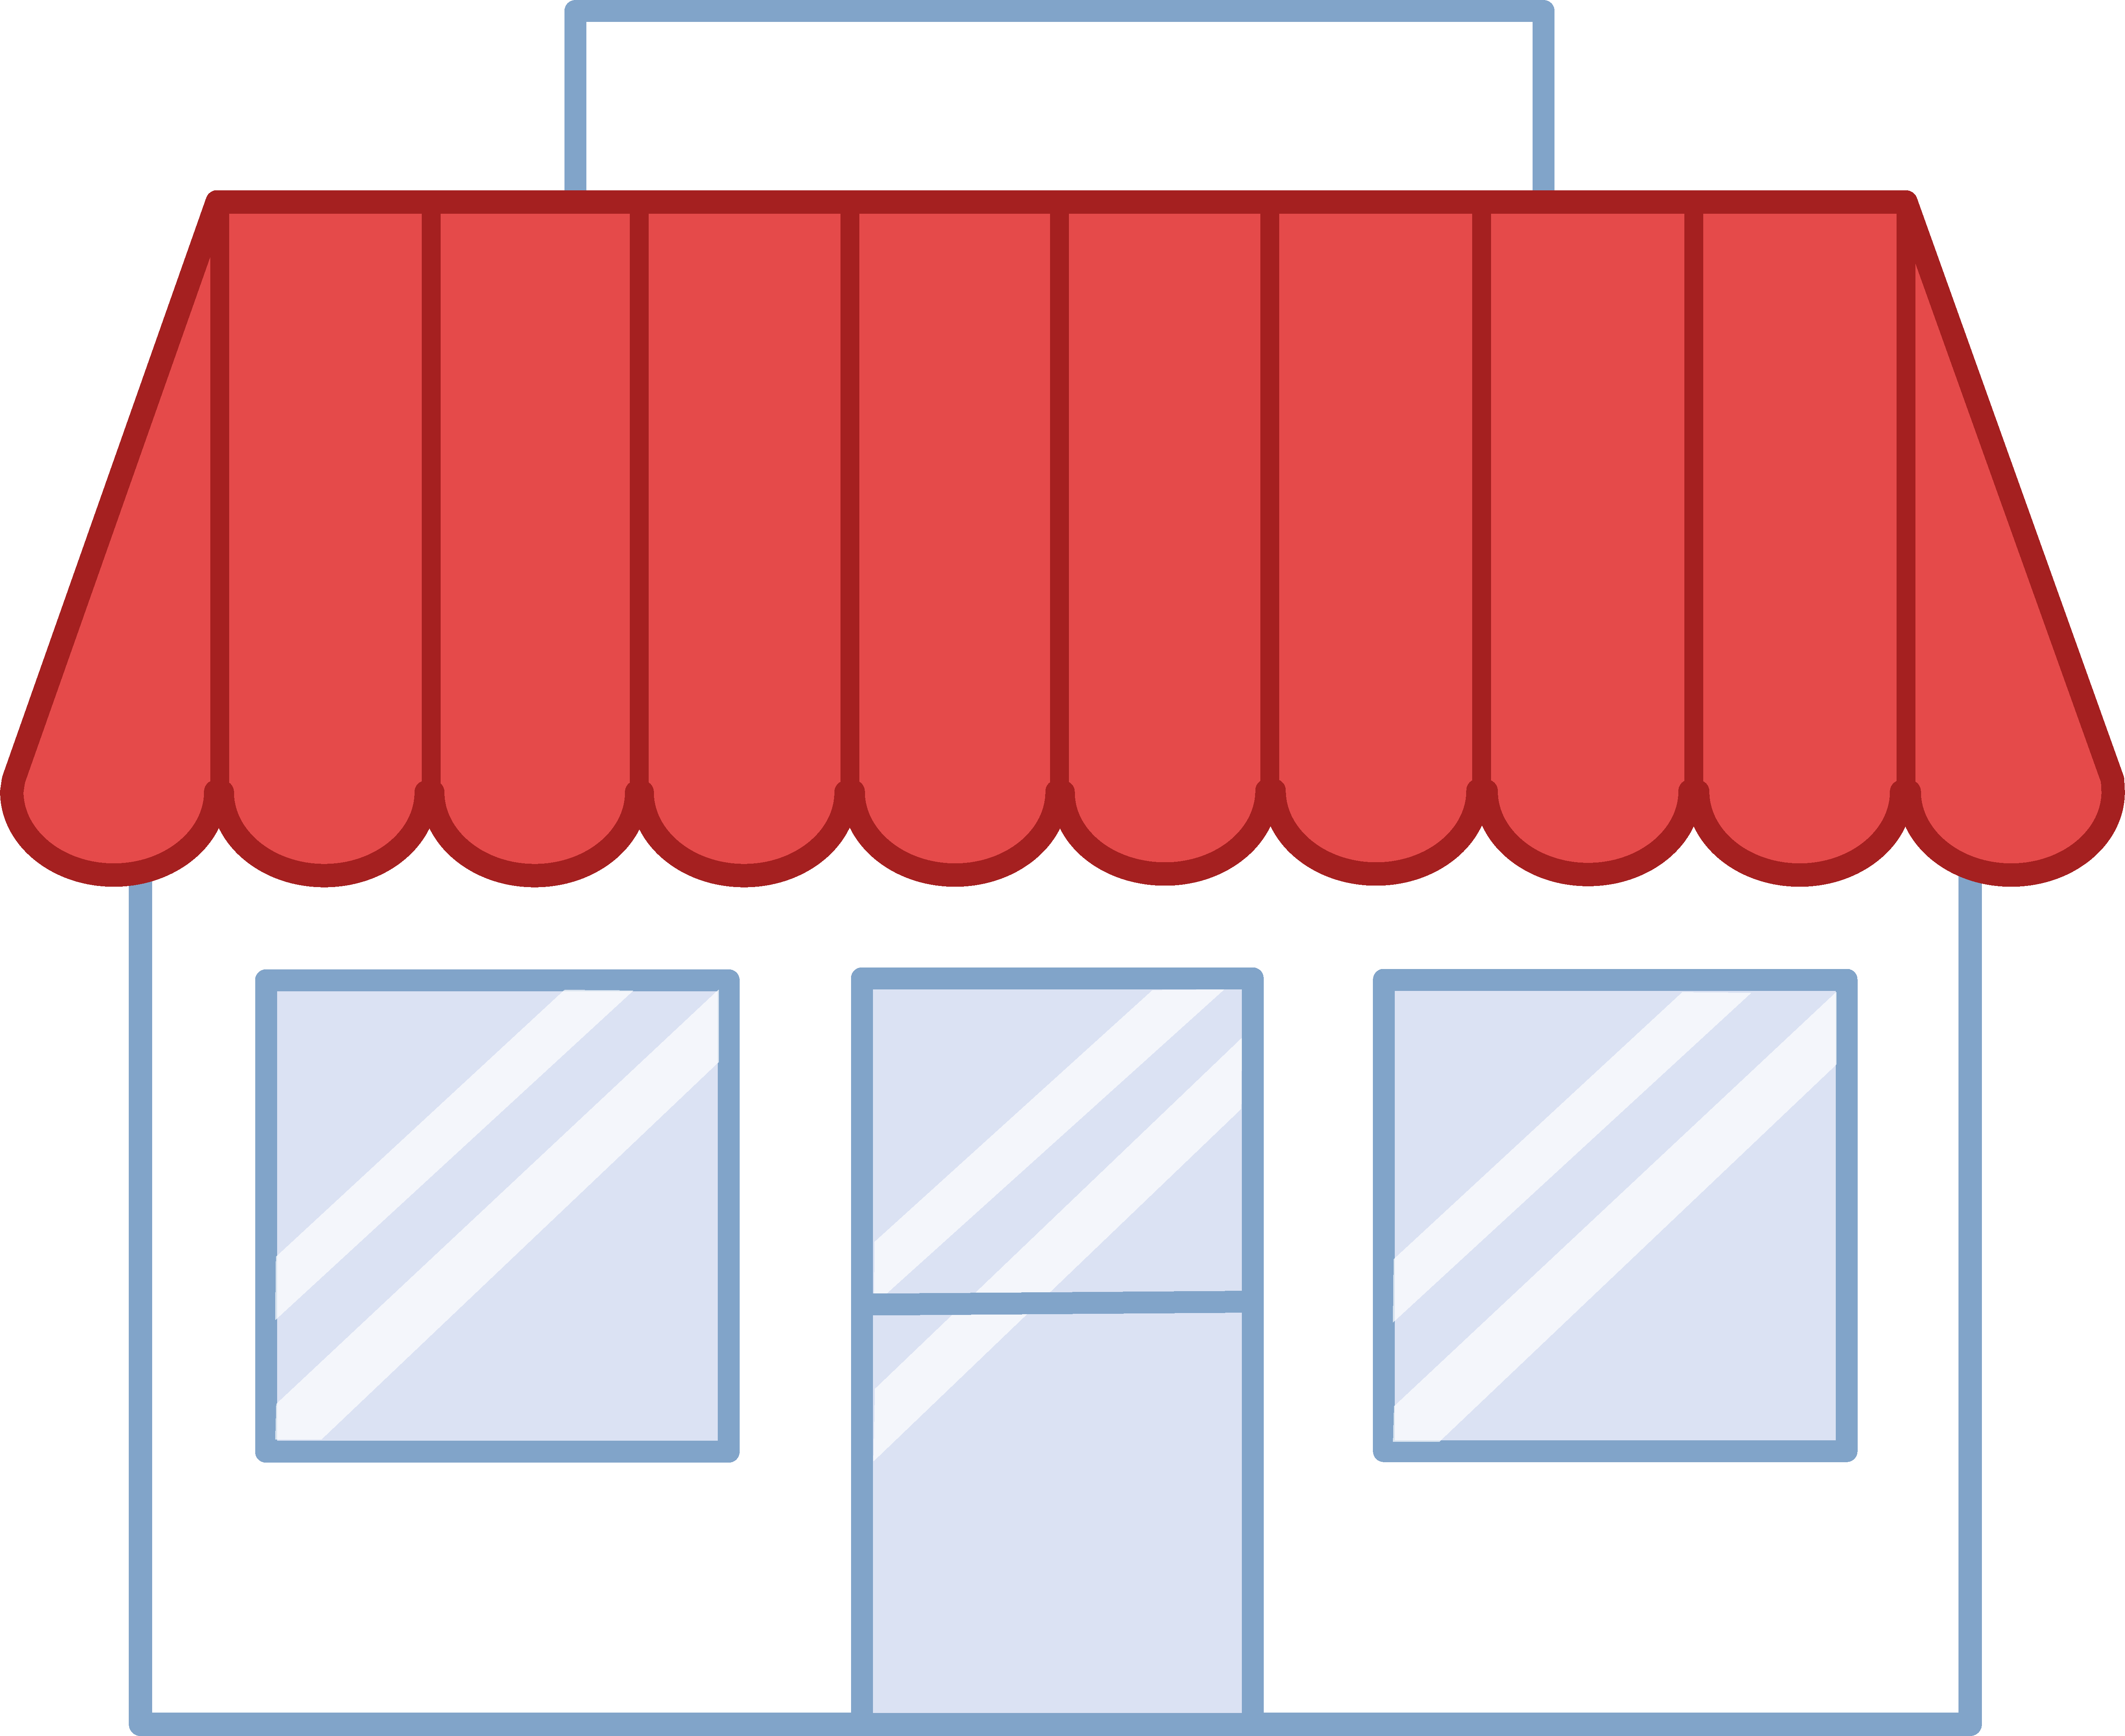 Free . Mall clipart clothing store building